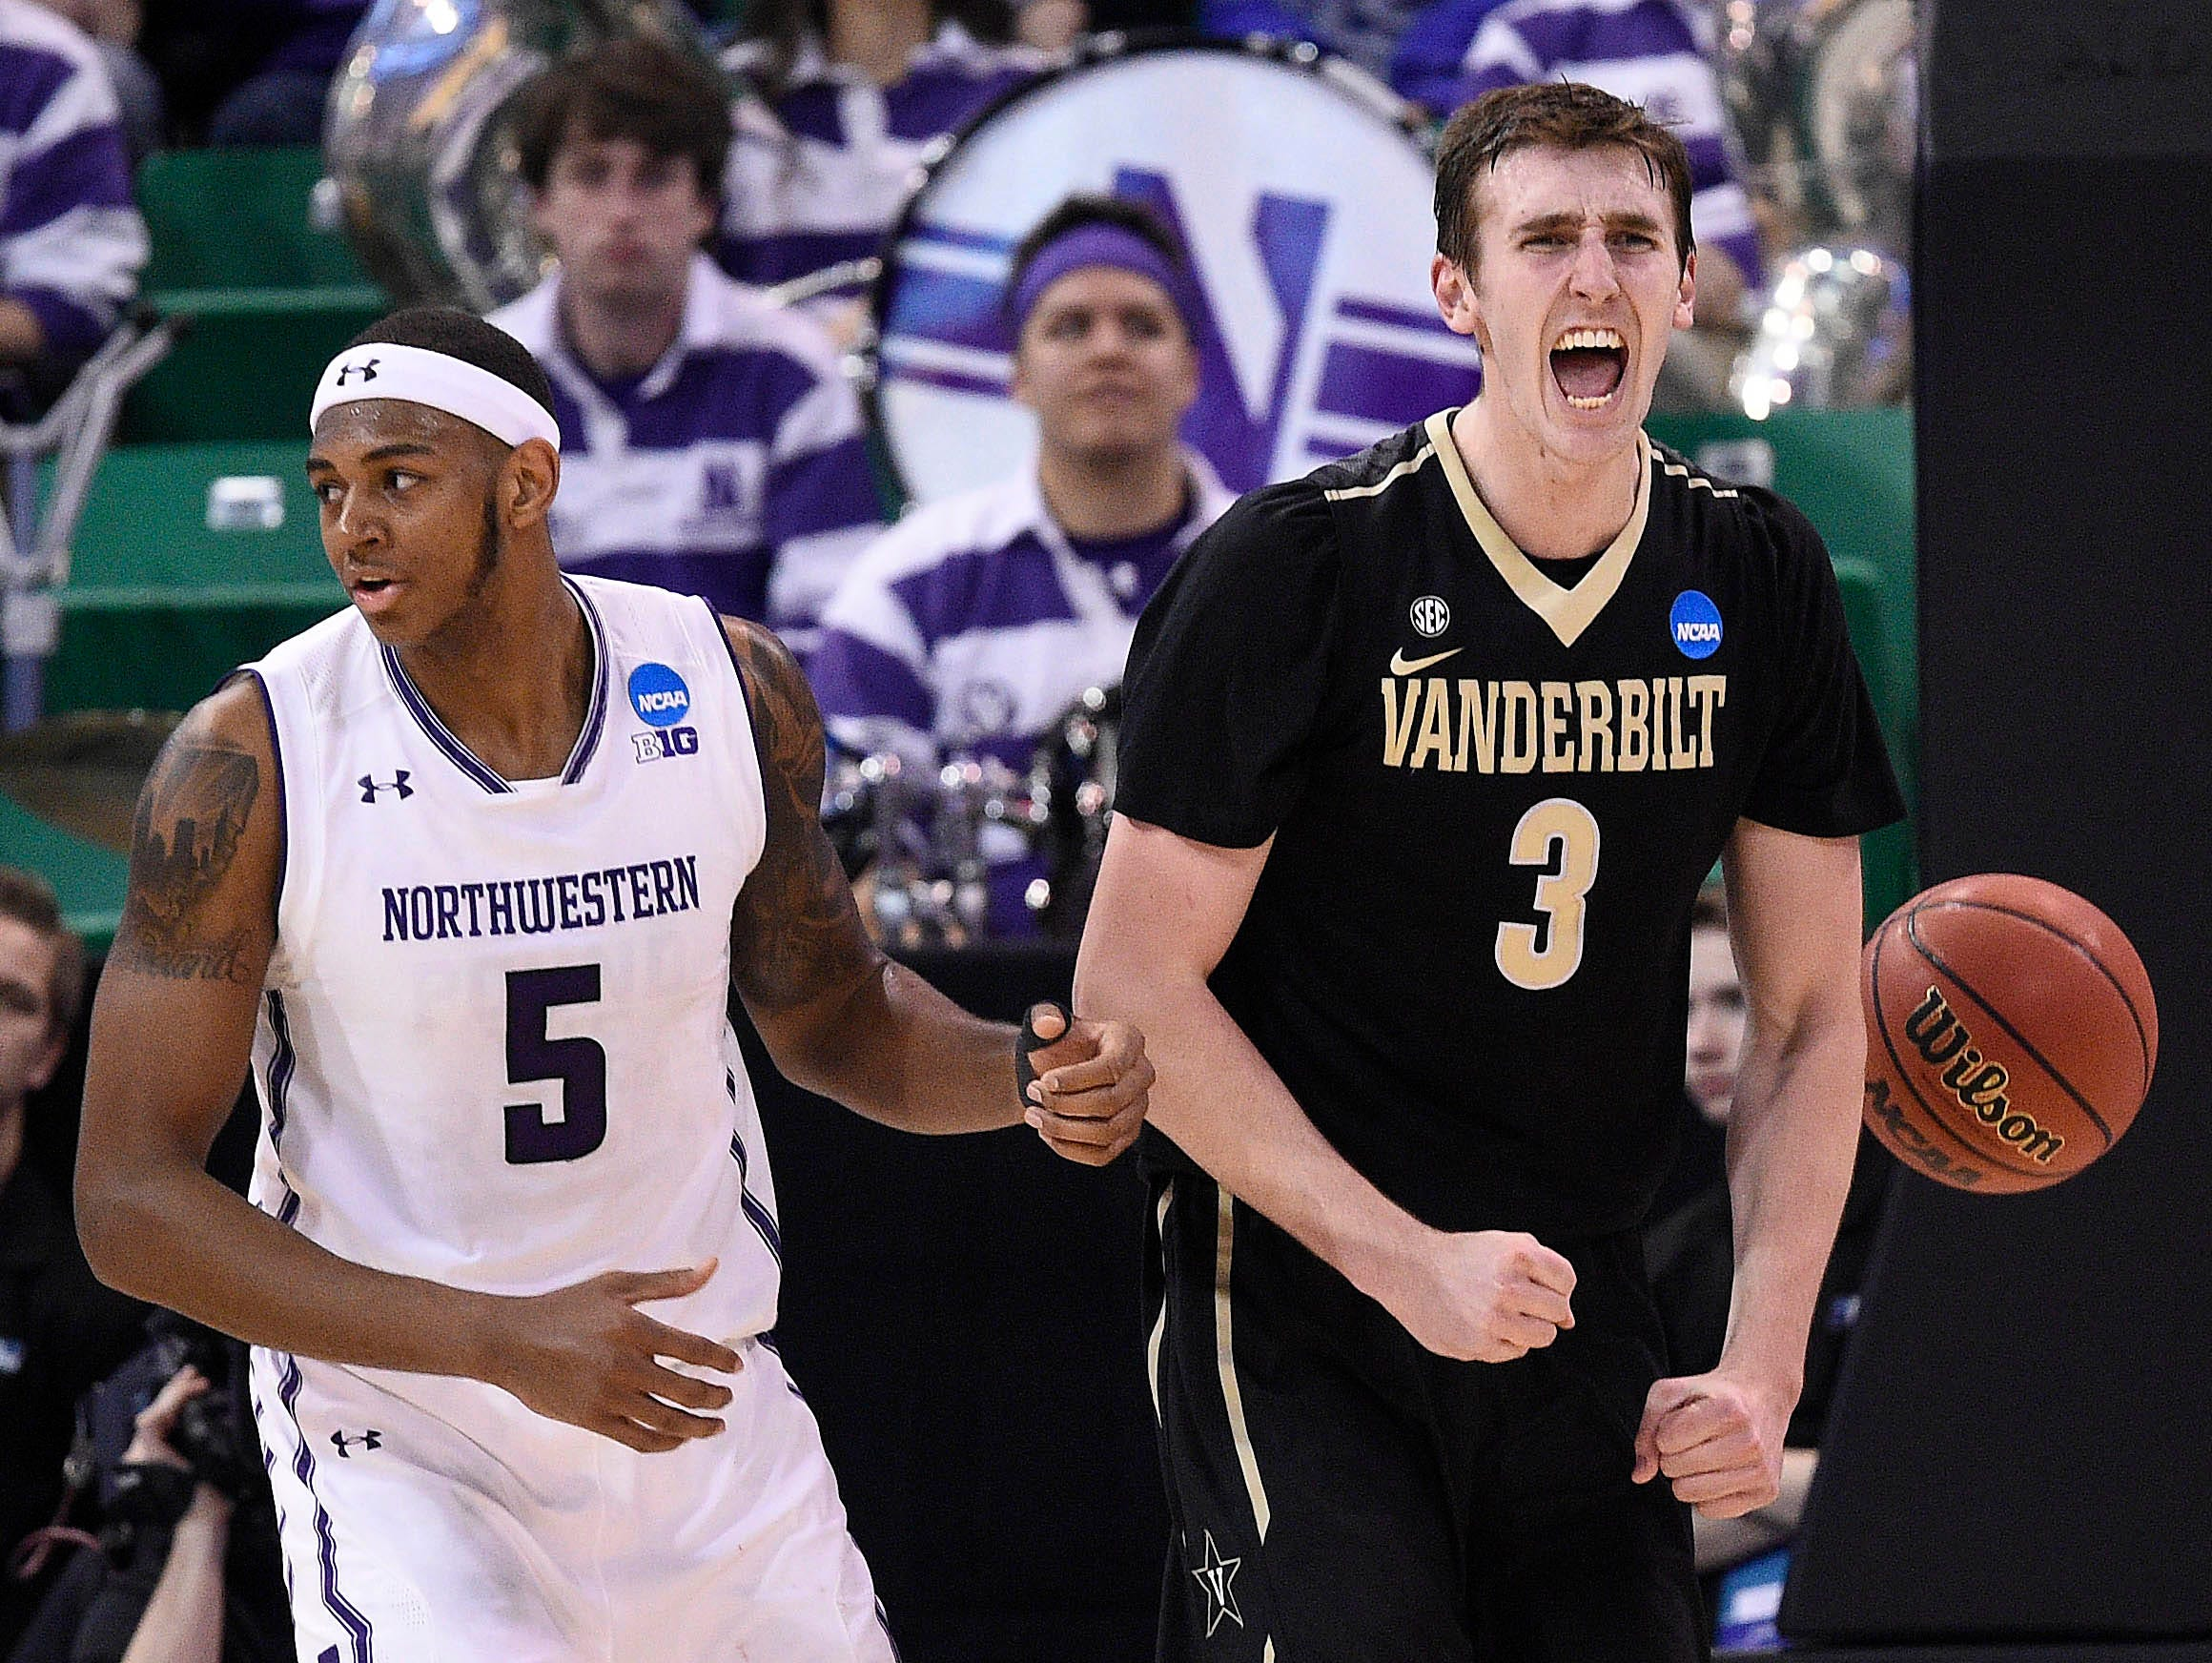 Vanderbilt forward Luke Kornet (3) reacts in front of Northwestern center Dererk Pardon (5) during the first half of the NCAA tournament first-round game in Salt Lake City on March 16, 2017.